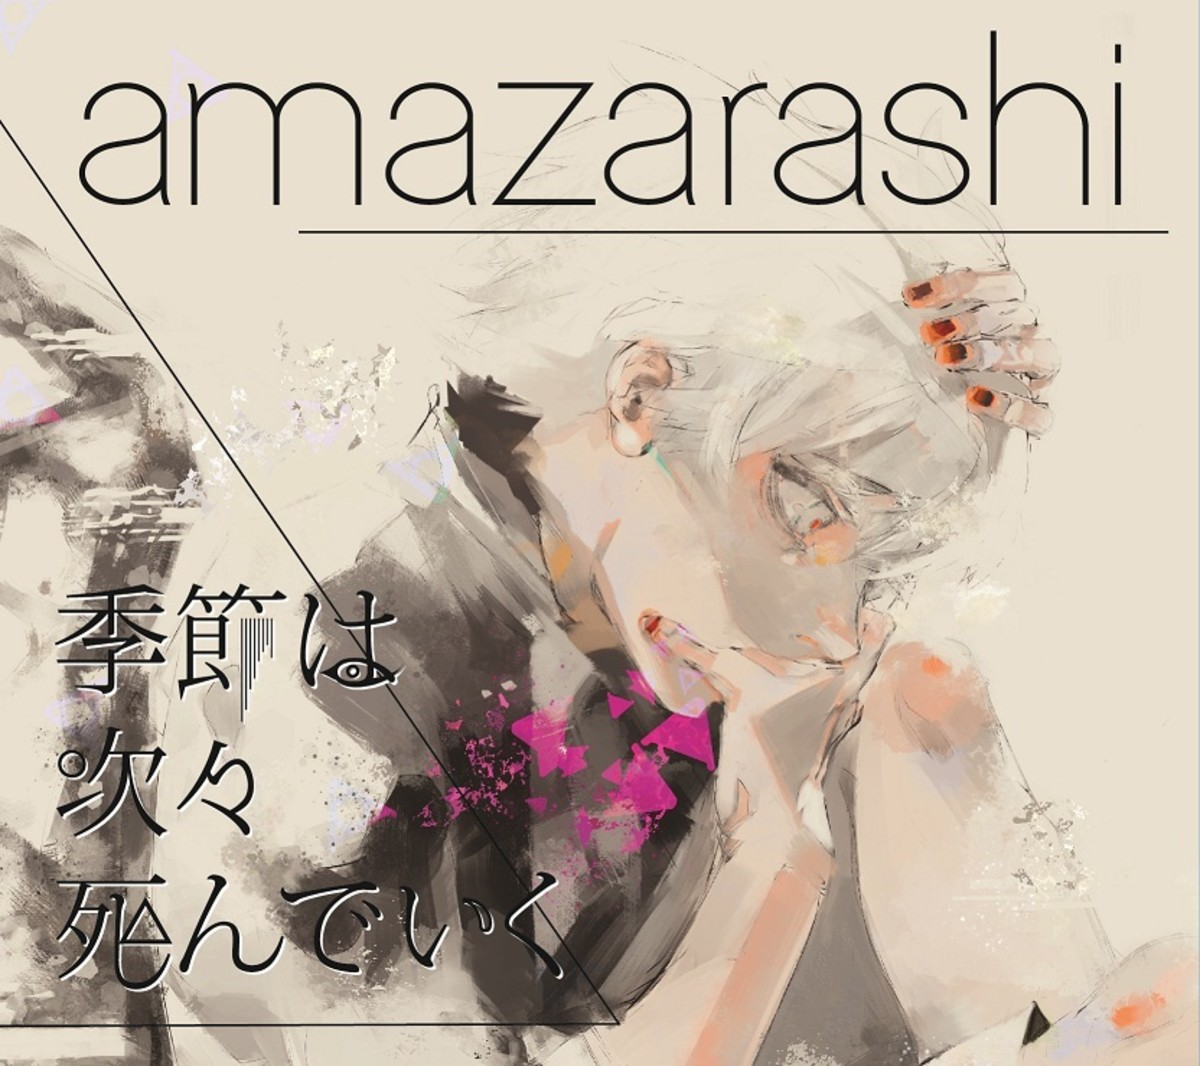 Ishida's drawing for the cover of amazarashi's album.